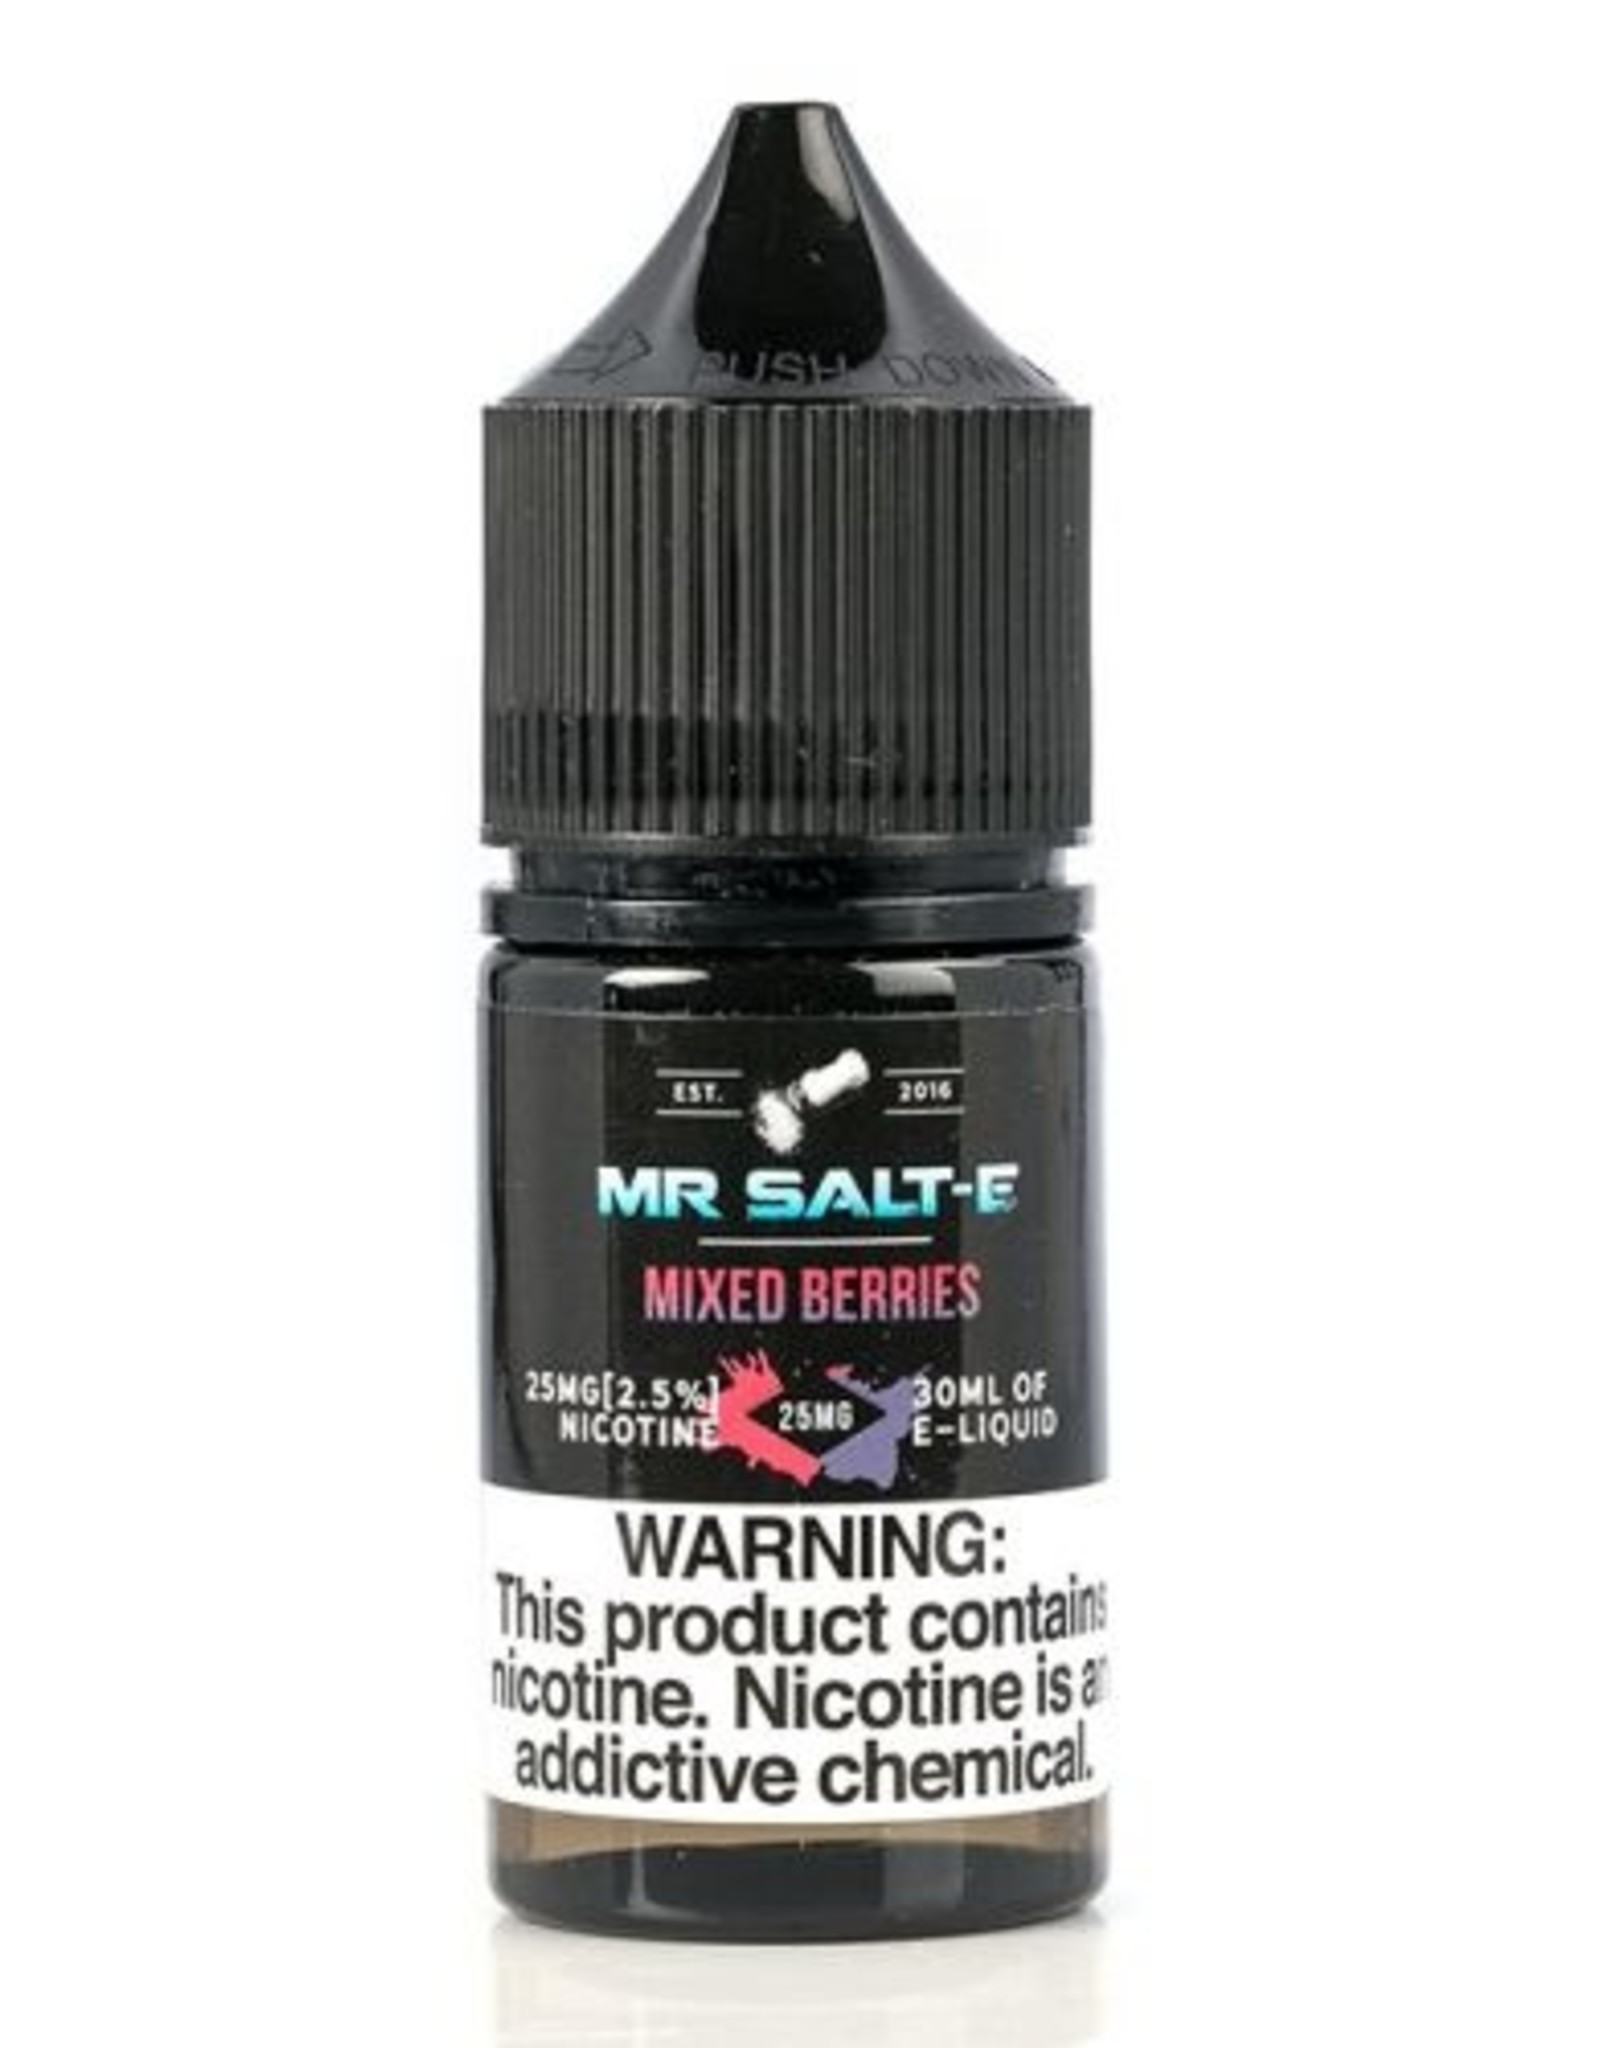 Mr Salt E SALTS - Mixed Berries